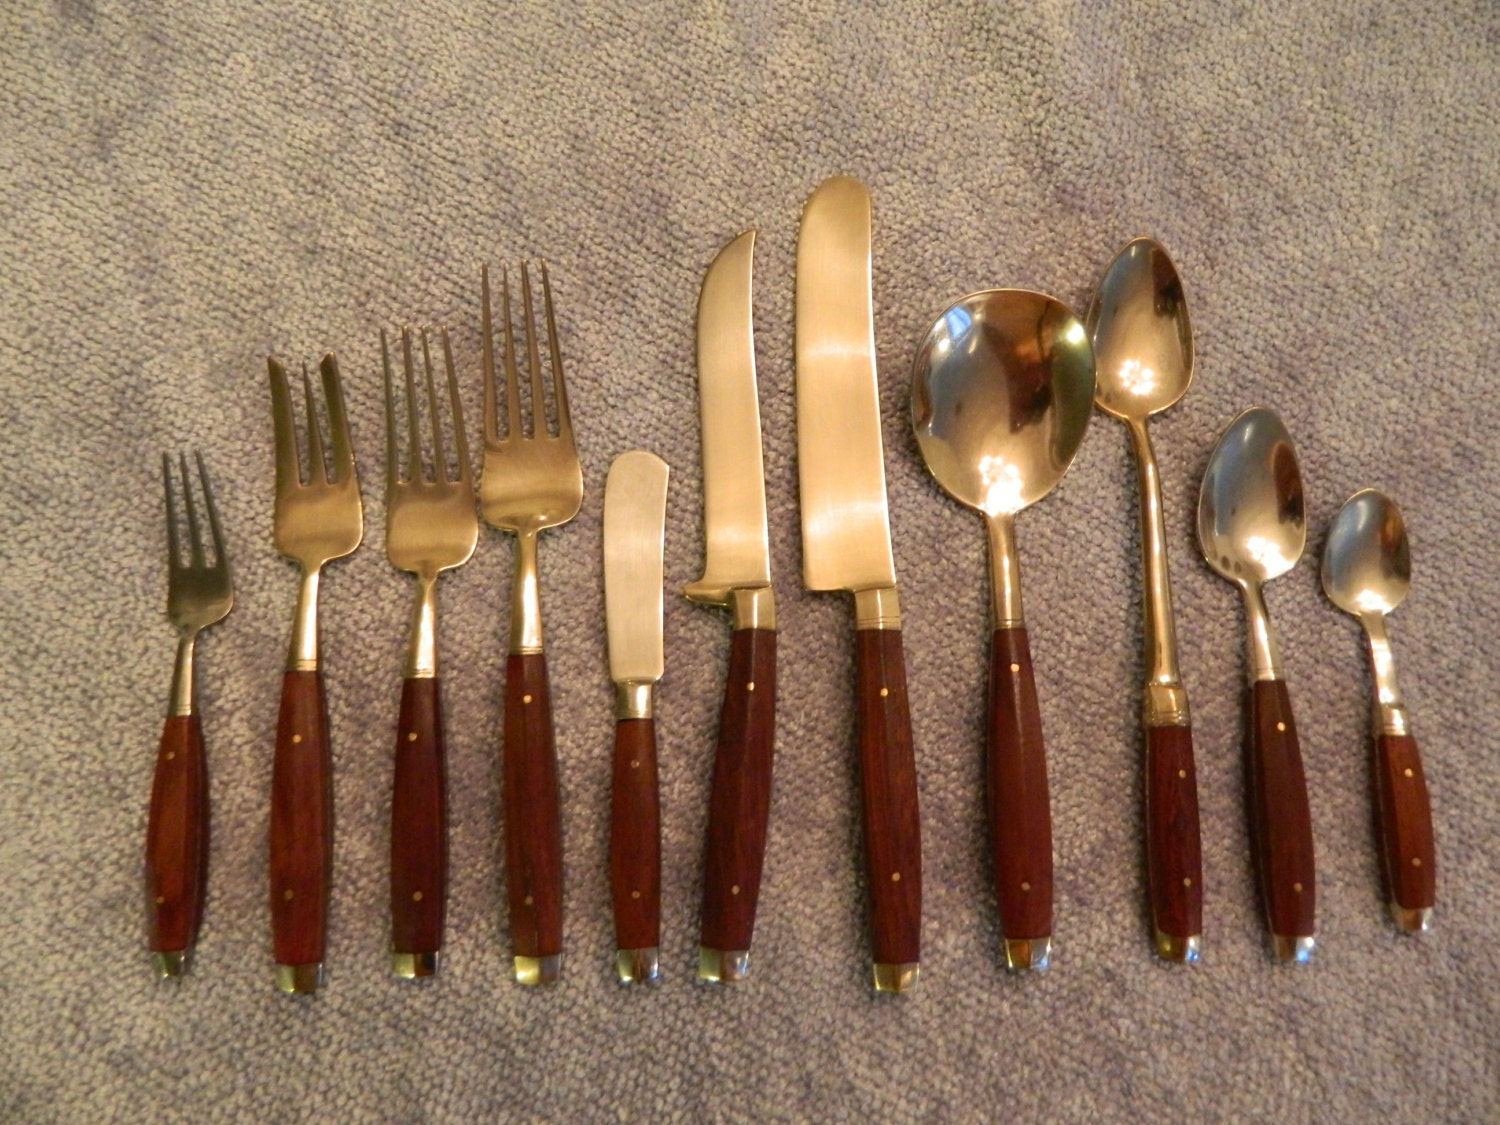 Vintage Flatware Bronze Brass And Rosewood Flatware 12 Place